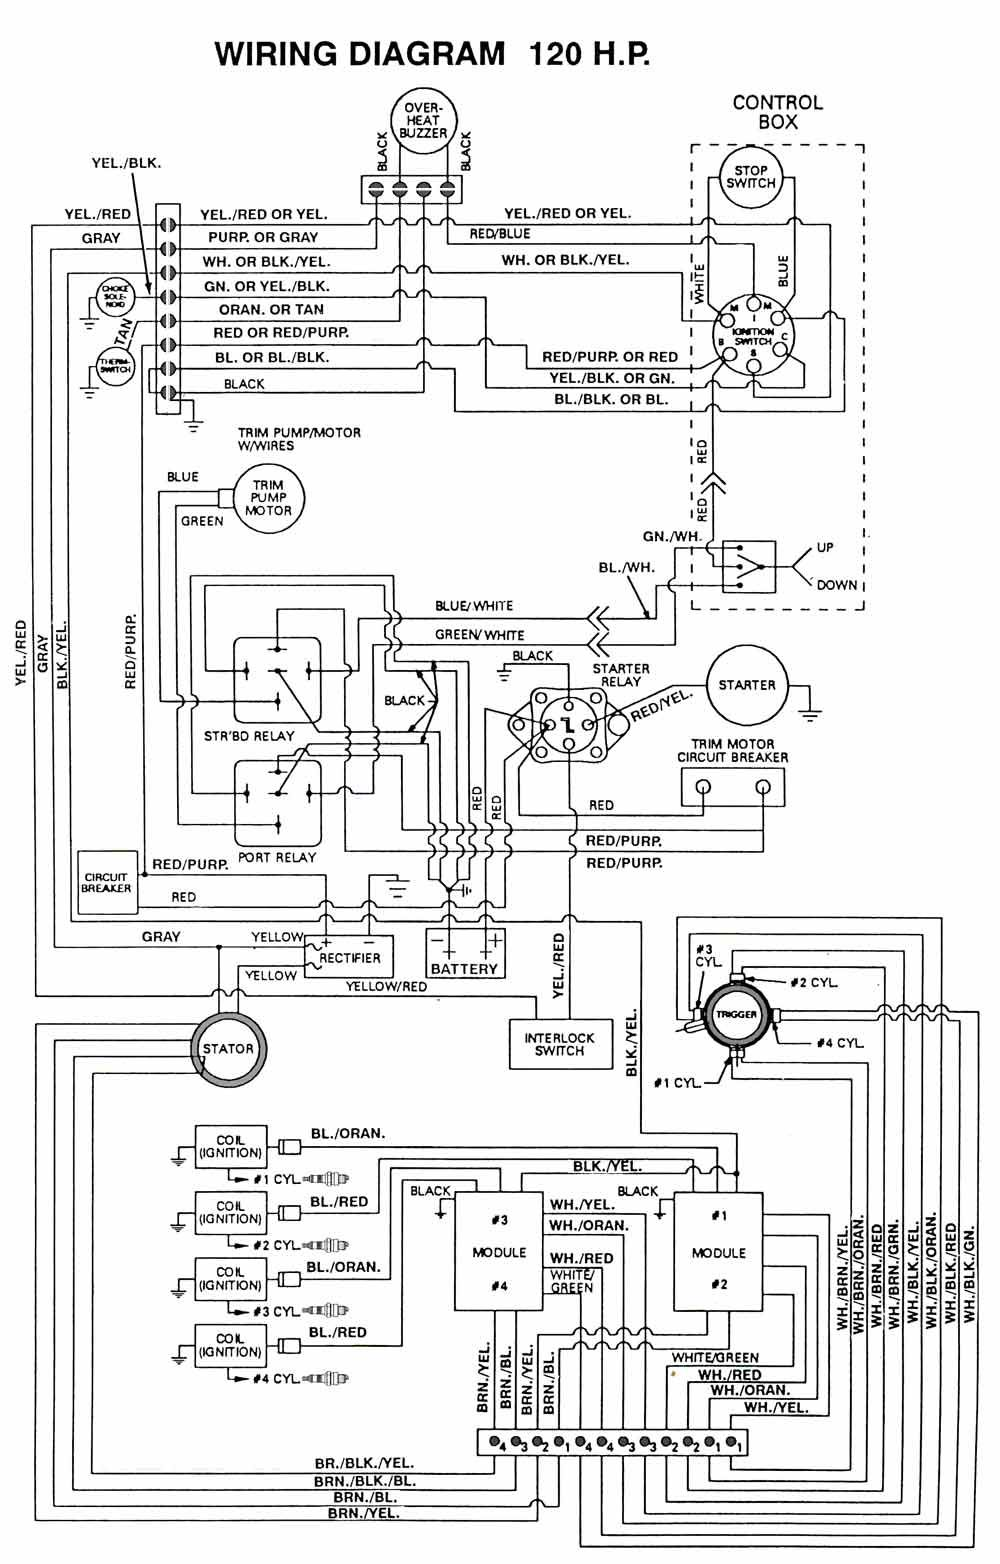 Image Result For Wiring Diagram For 1990 Mercury Force 120 Hp Mercruiser  Alpha One Wiring Diagram 120 Mercruiser Ignition Wiring Diagram